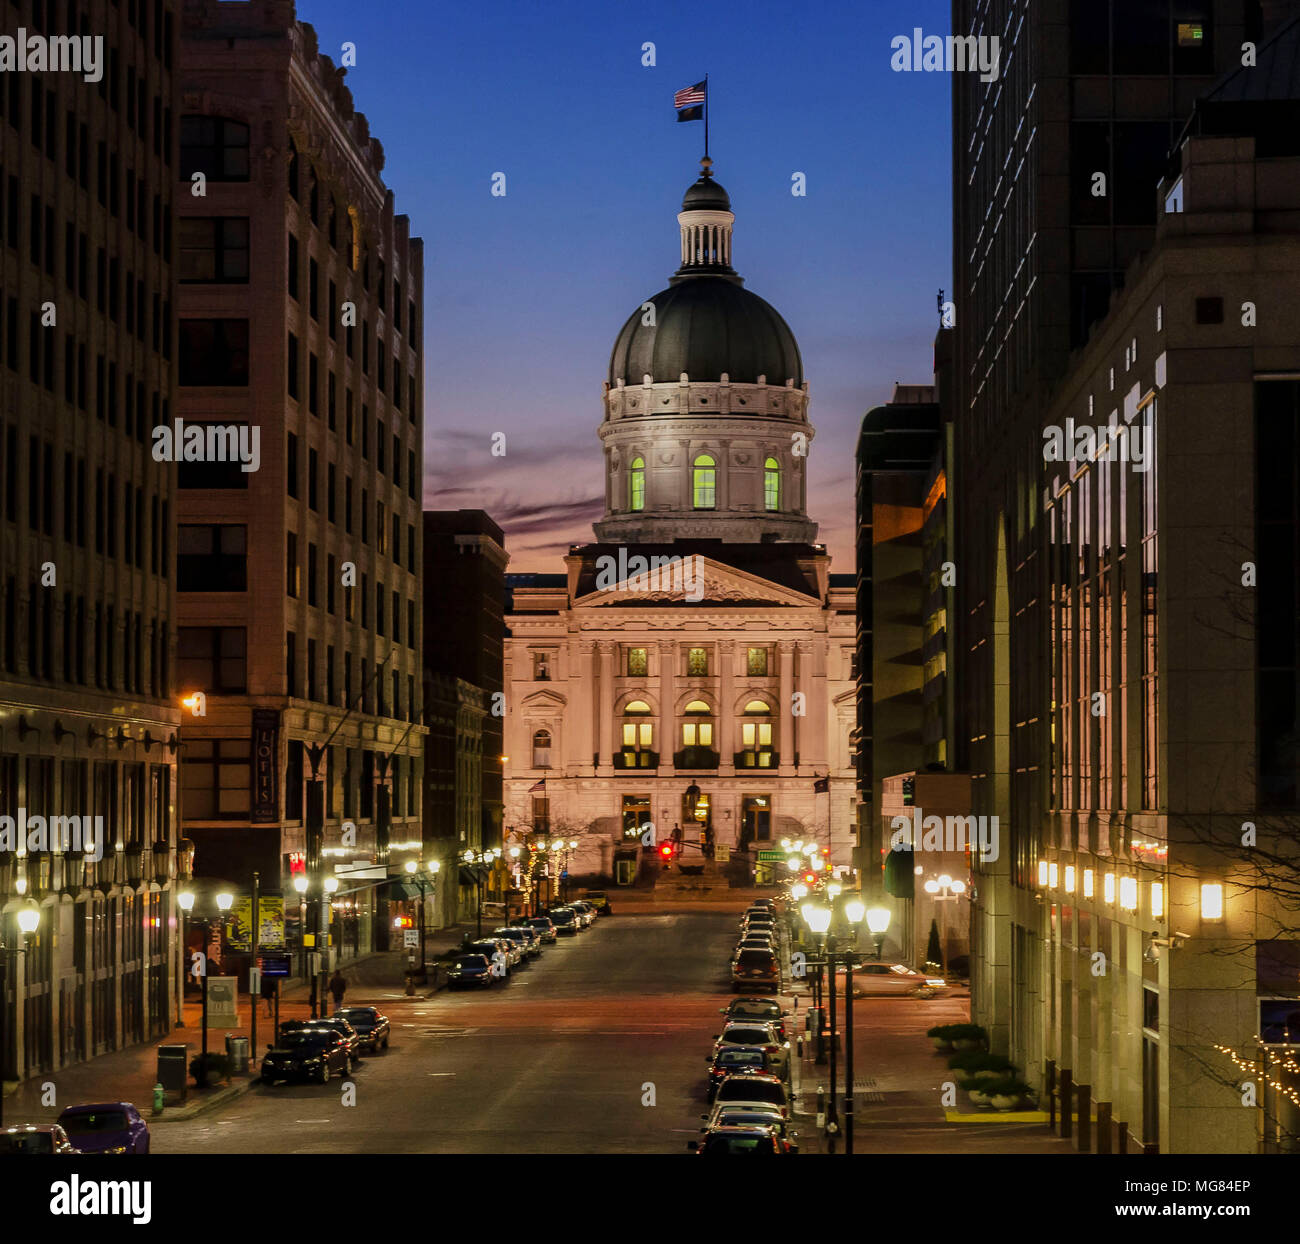 Indiana capitol at night - Stock Image